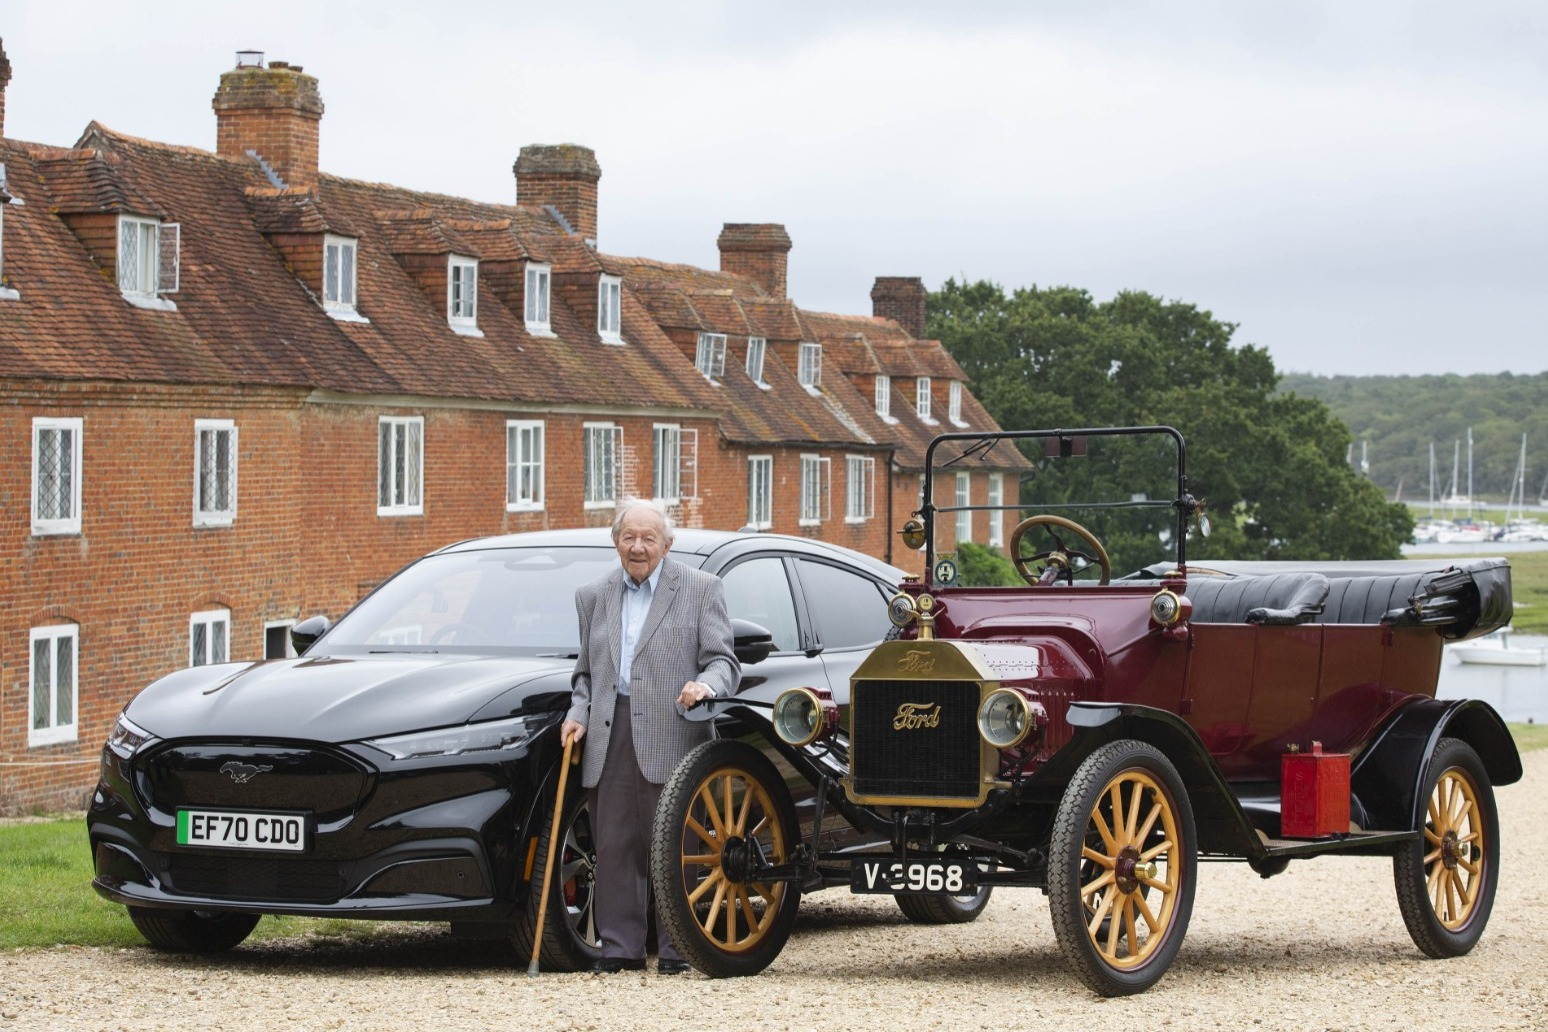 101-year-old motoring enthusiast takes new fully electric Ford for a spin